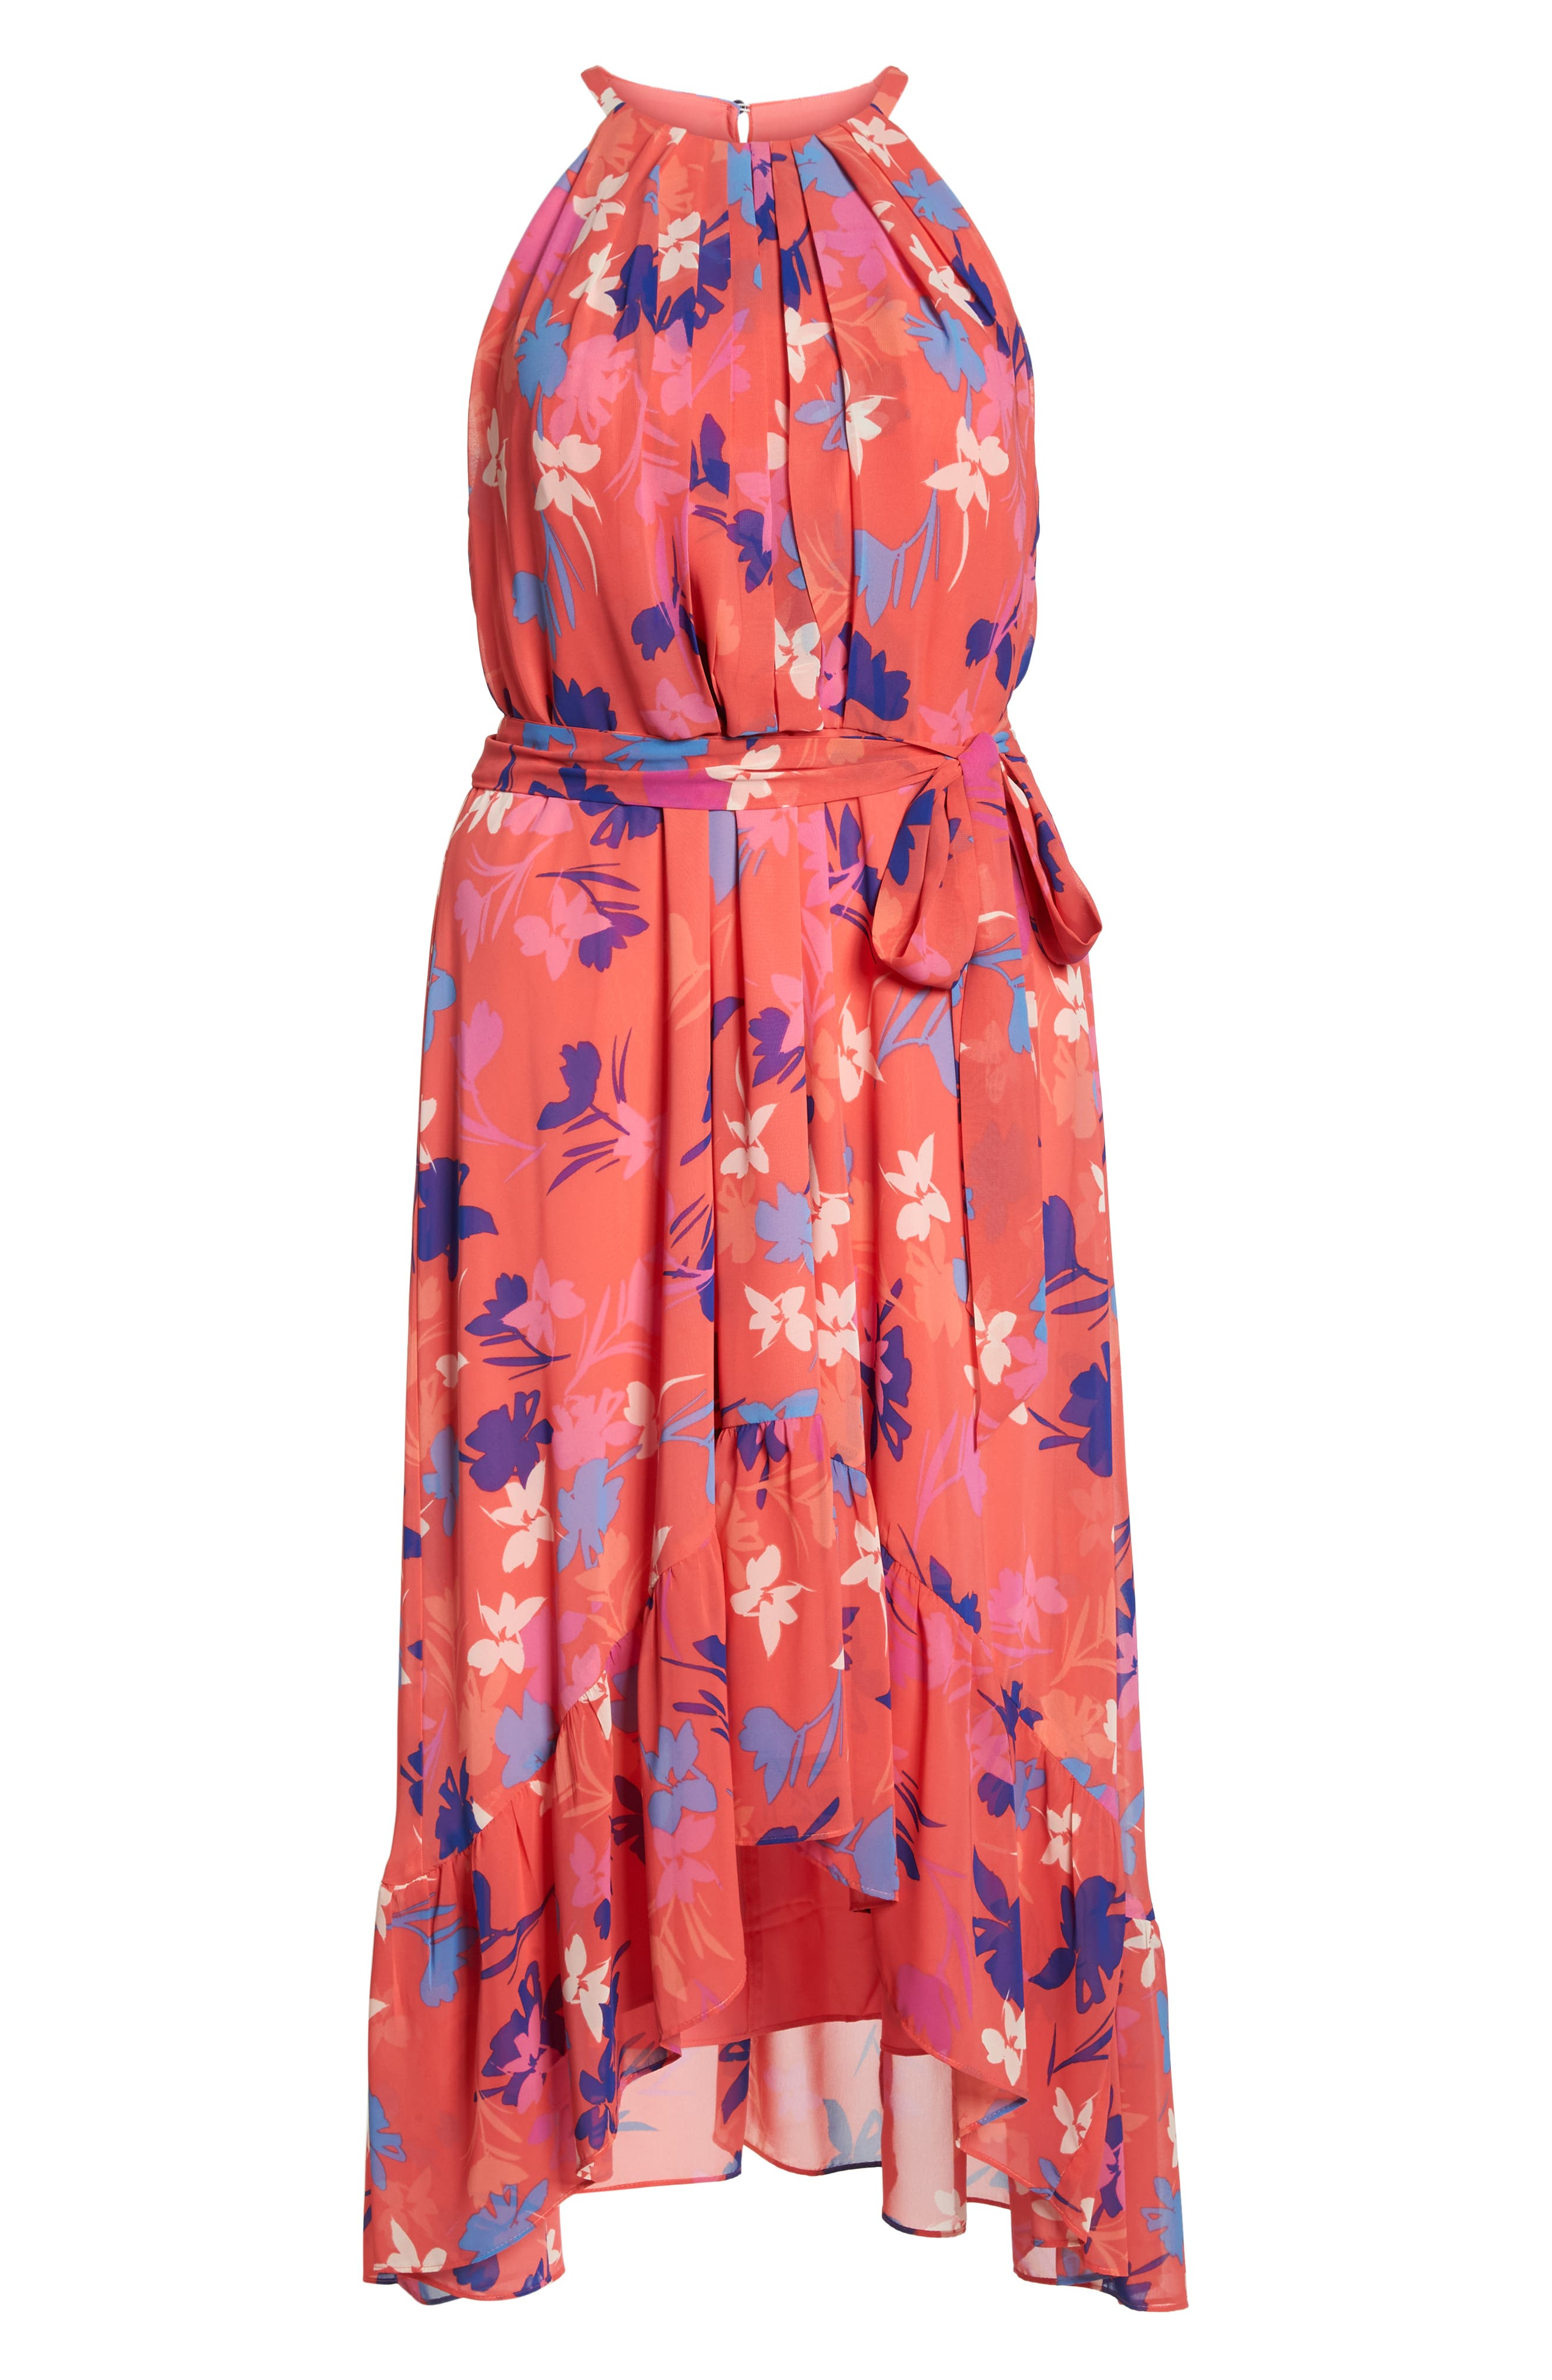 Floral High/Low Halter Dress,                             Alternate thumbnail 7, color,                             Coral/ Fiery Fuchsia/ Navy